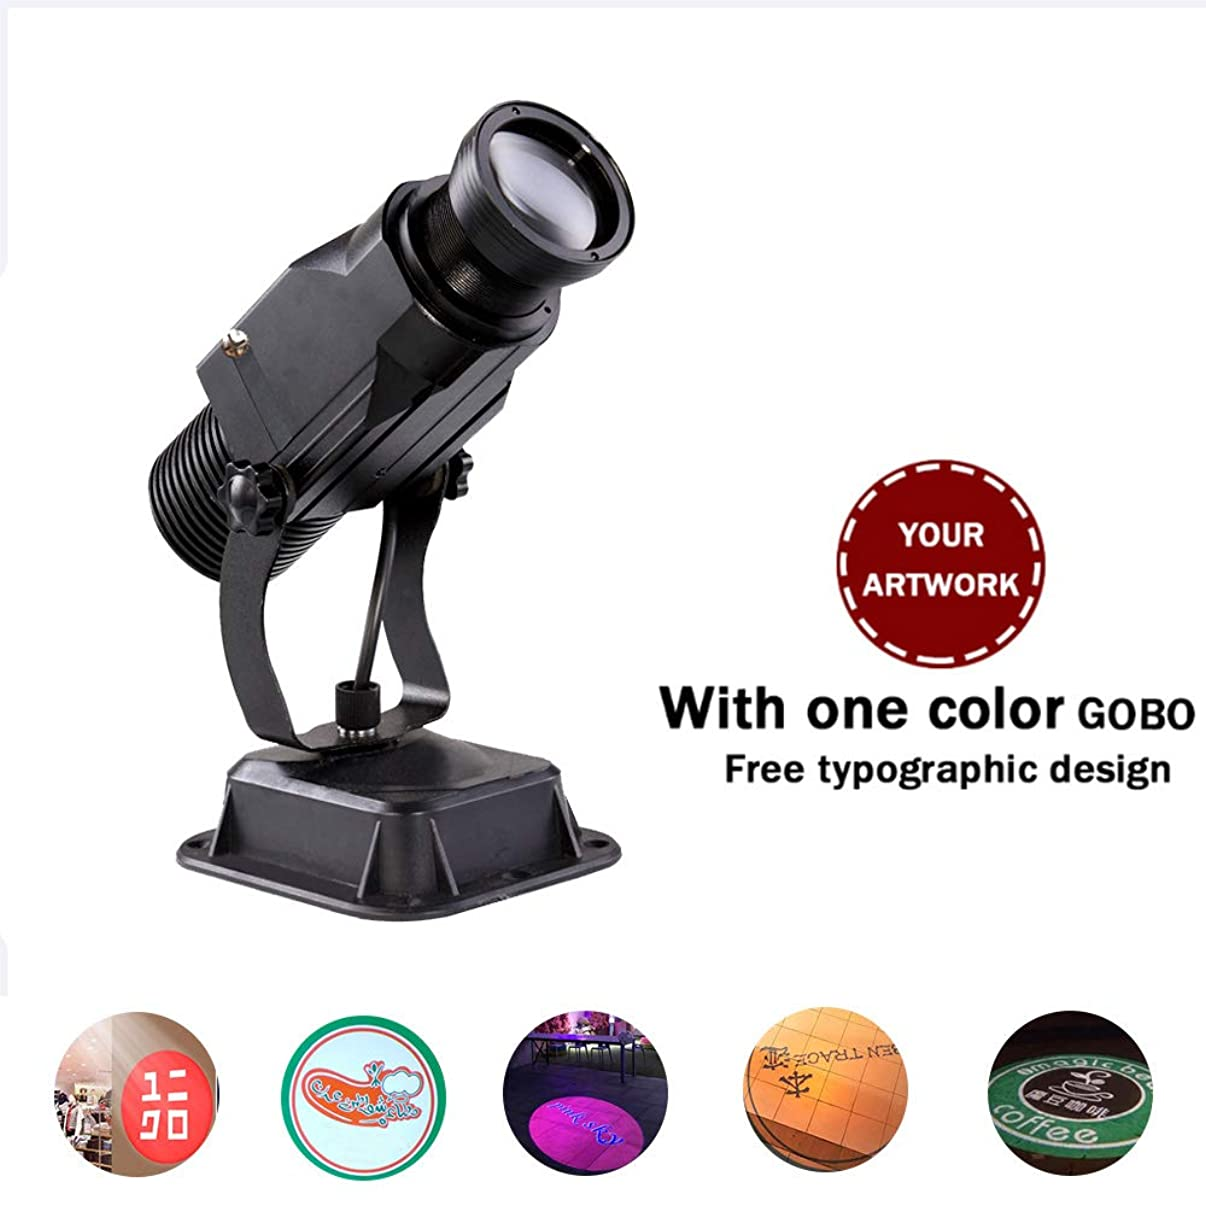 AMAZOIN Led Custom Image GOBO Logo Projector Light with Manual Zoom&Focus Customized Gobos for Party Lighting, Landscape Light, Dj Wedding and Advertisement (15W, Indoor Plug-in Card)